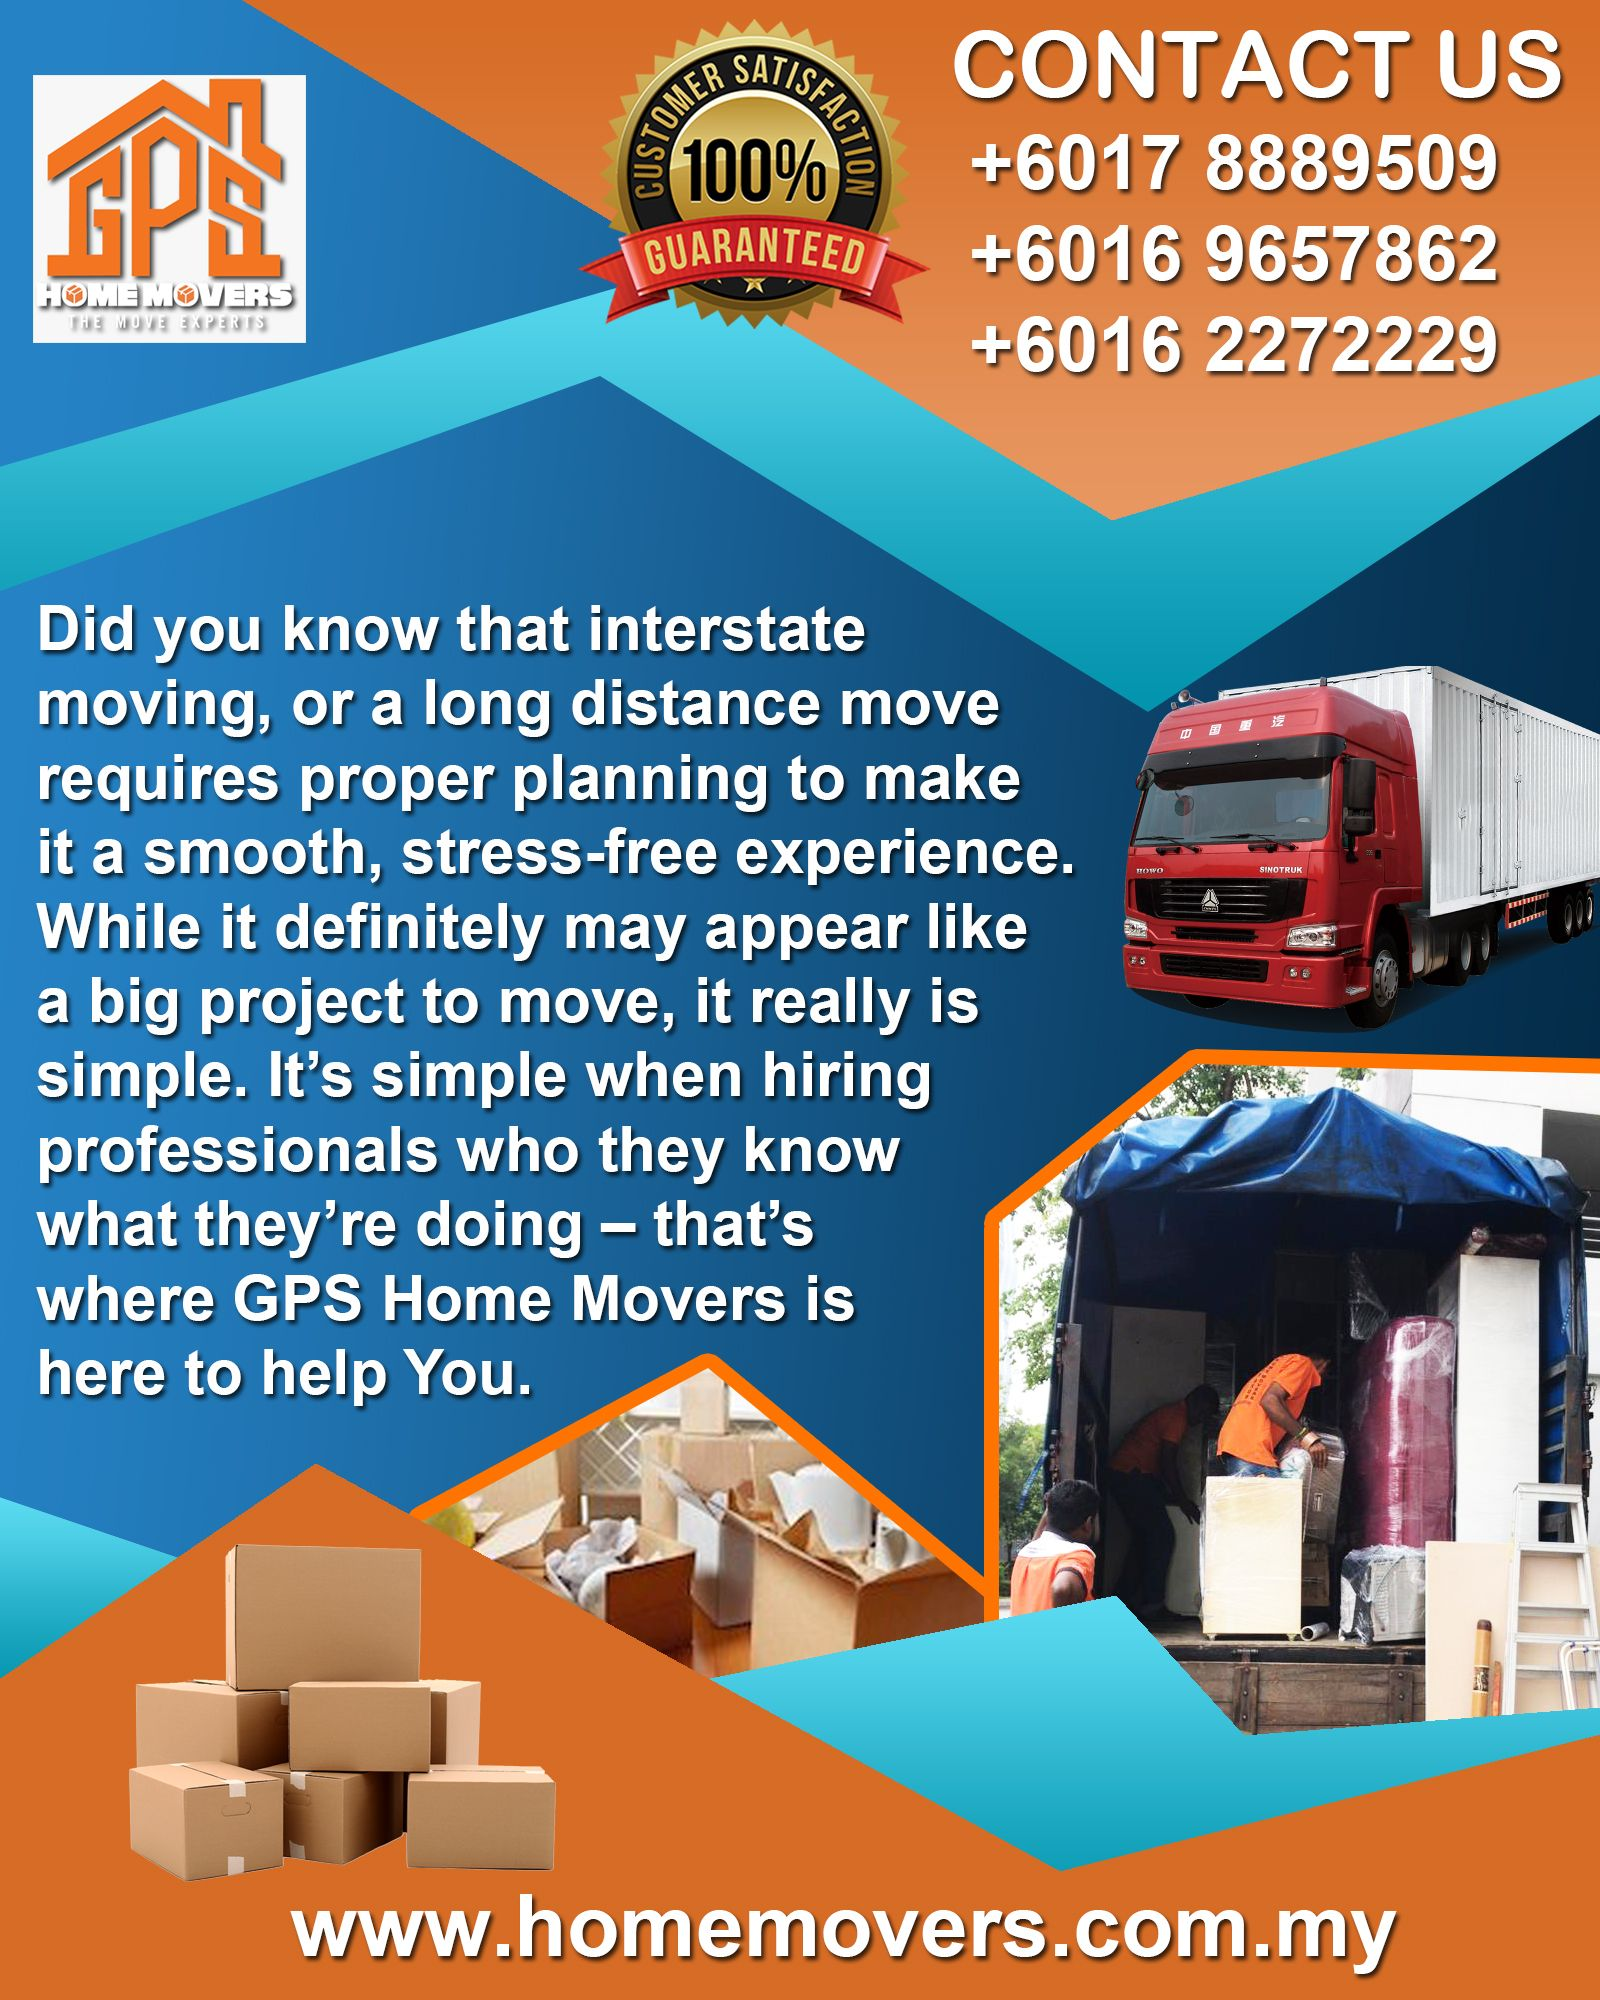 Gps Home Movers In 2020 House Movers Movers Packing Services